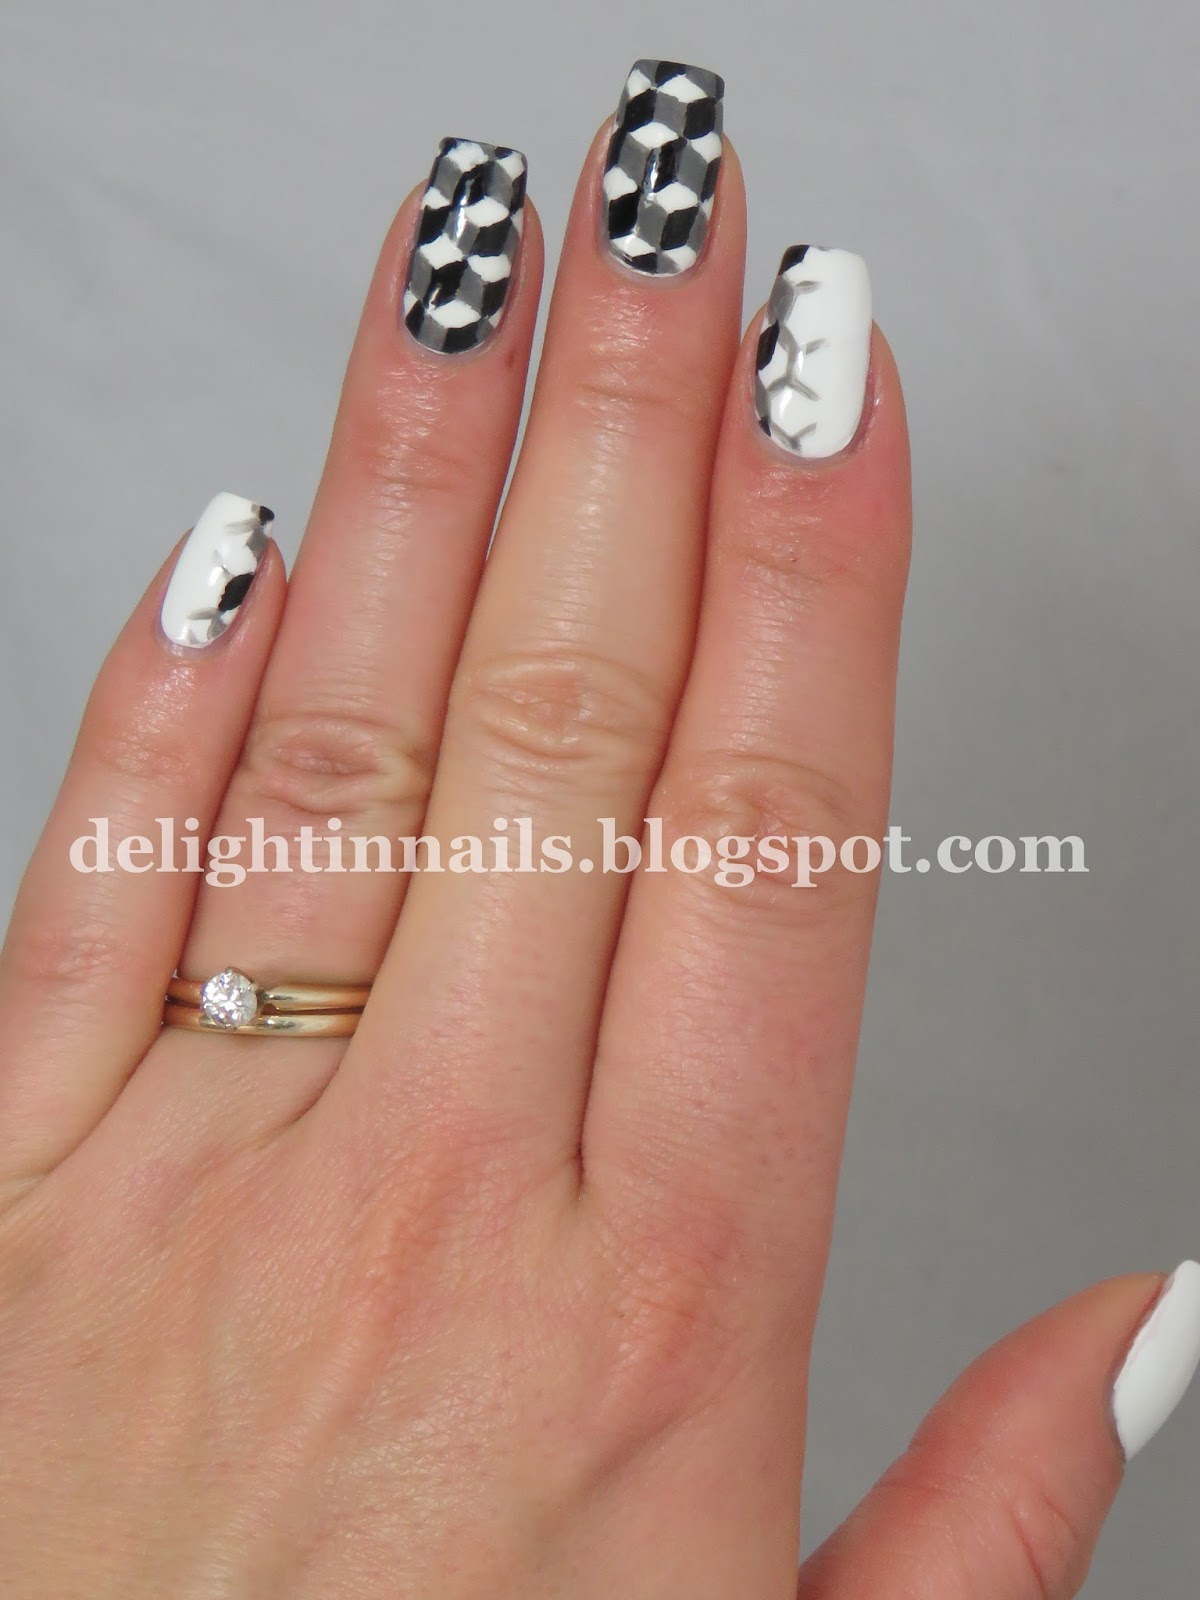 Delight In Nails: 40 Great Nail Art Ideas